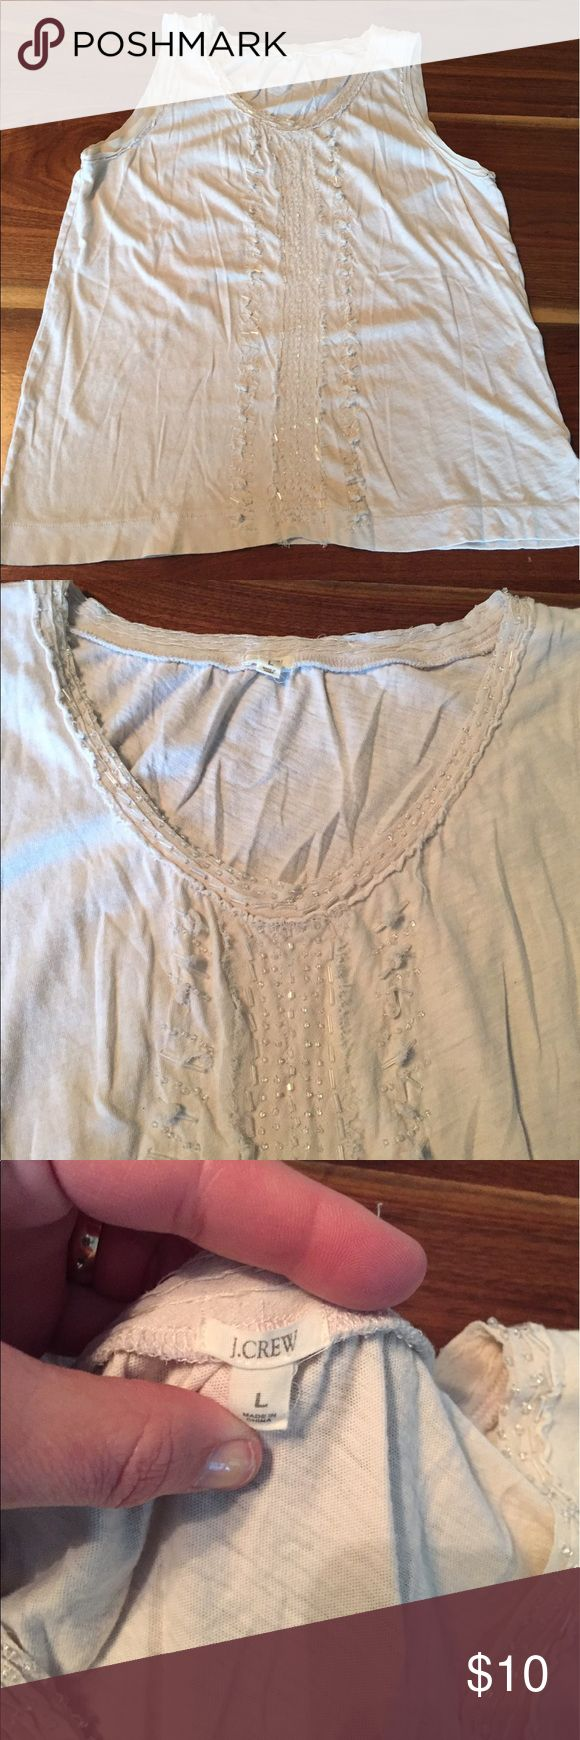 J. Jill women's top size Large J. Jill women's size Large distressed look cream colored top. Good used condition. J. Jill Tops Tank Tops